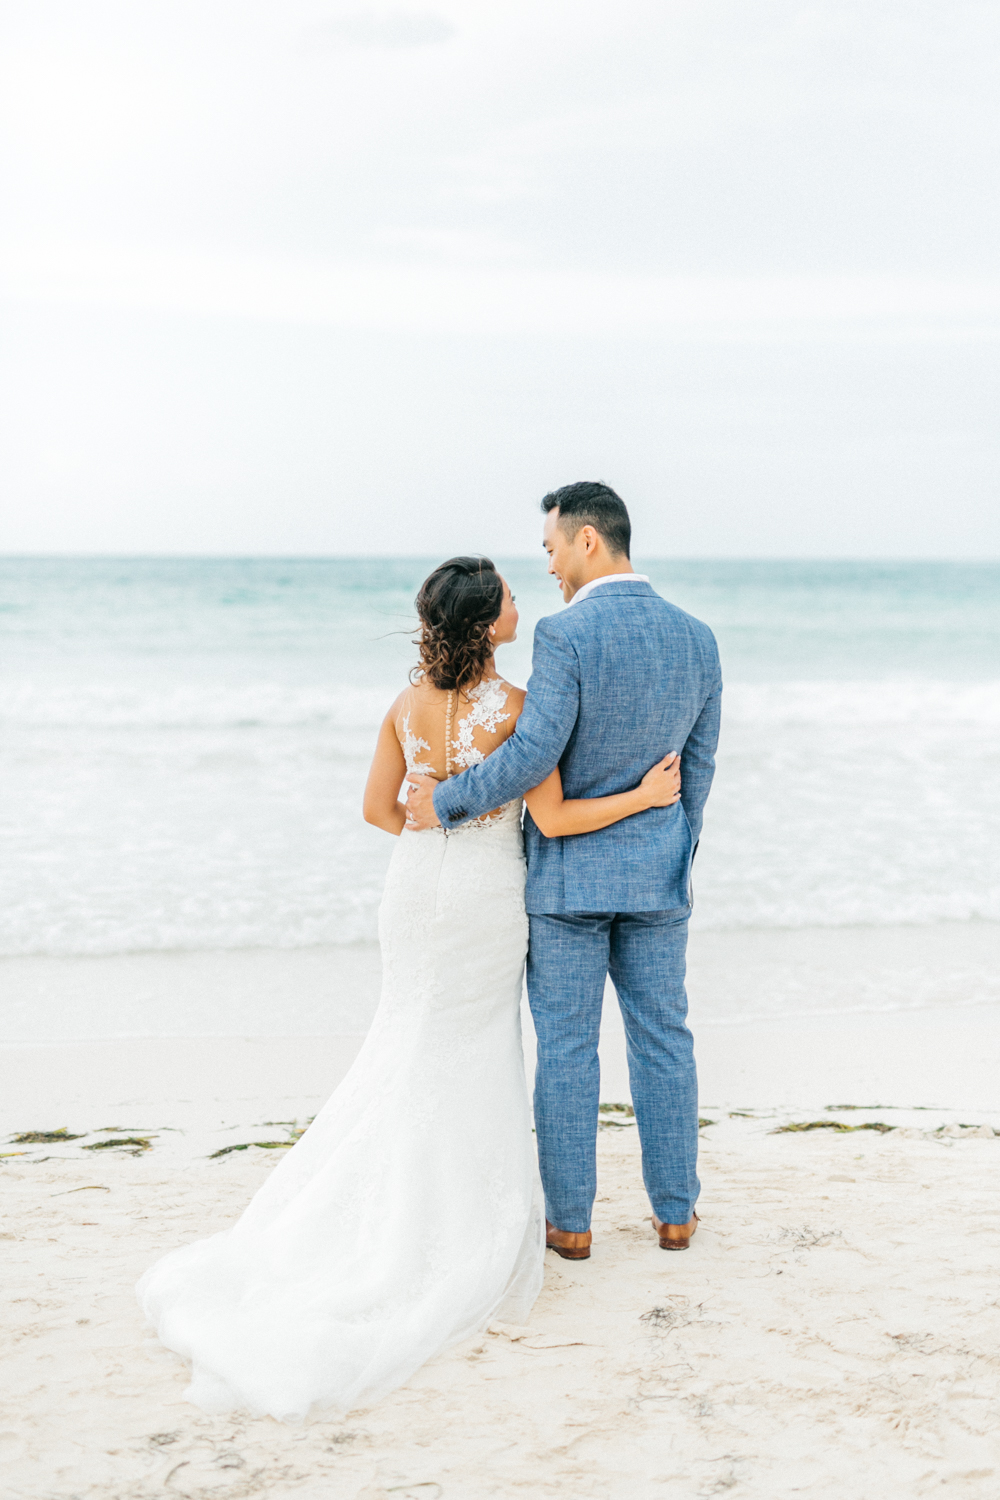 Bride and groom holding each othat at Royalton White Sands Resort in Jamaica